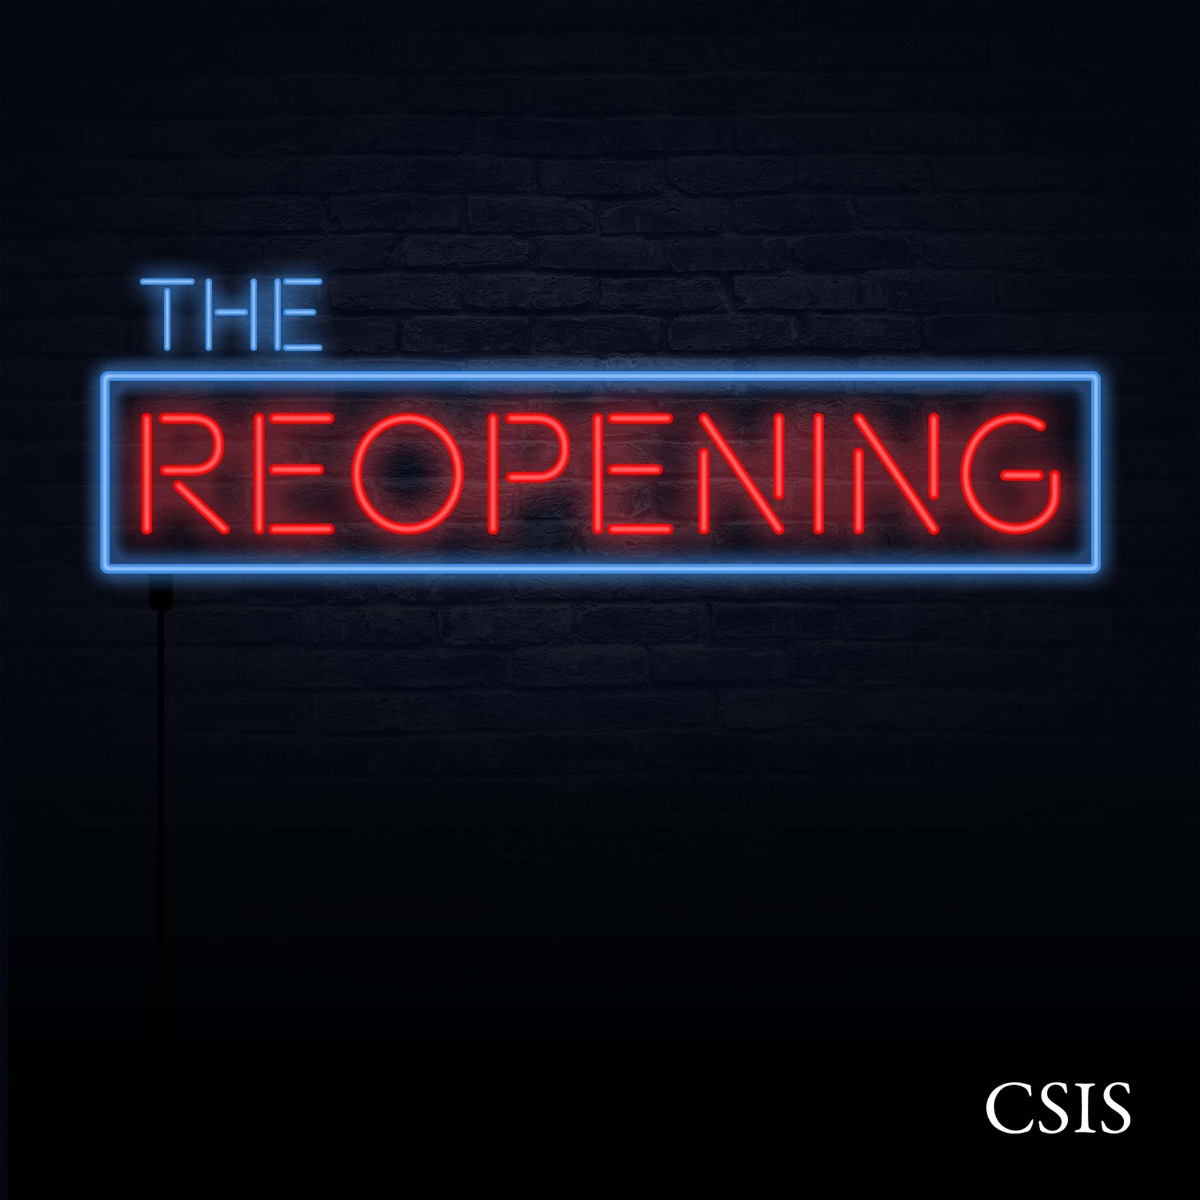 The Reopening